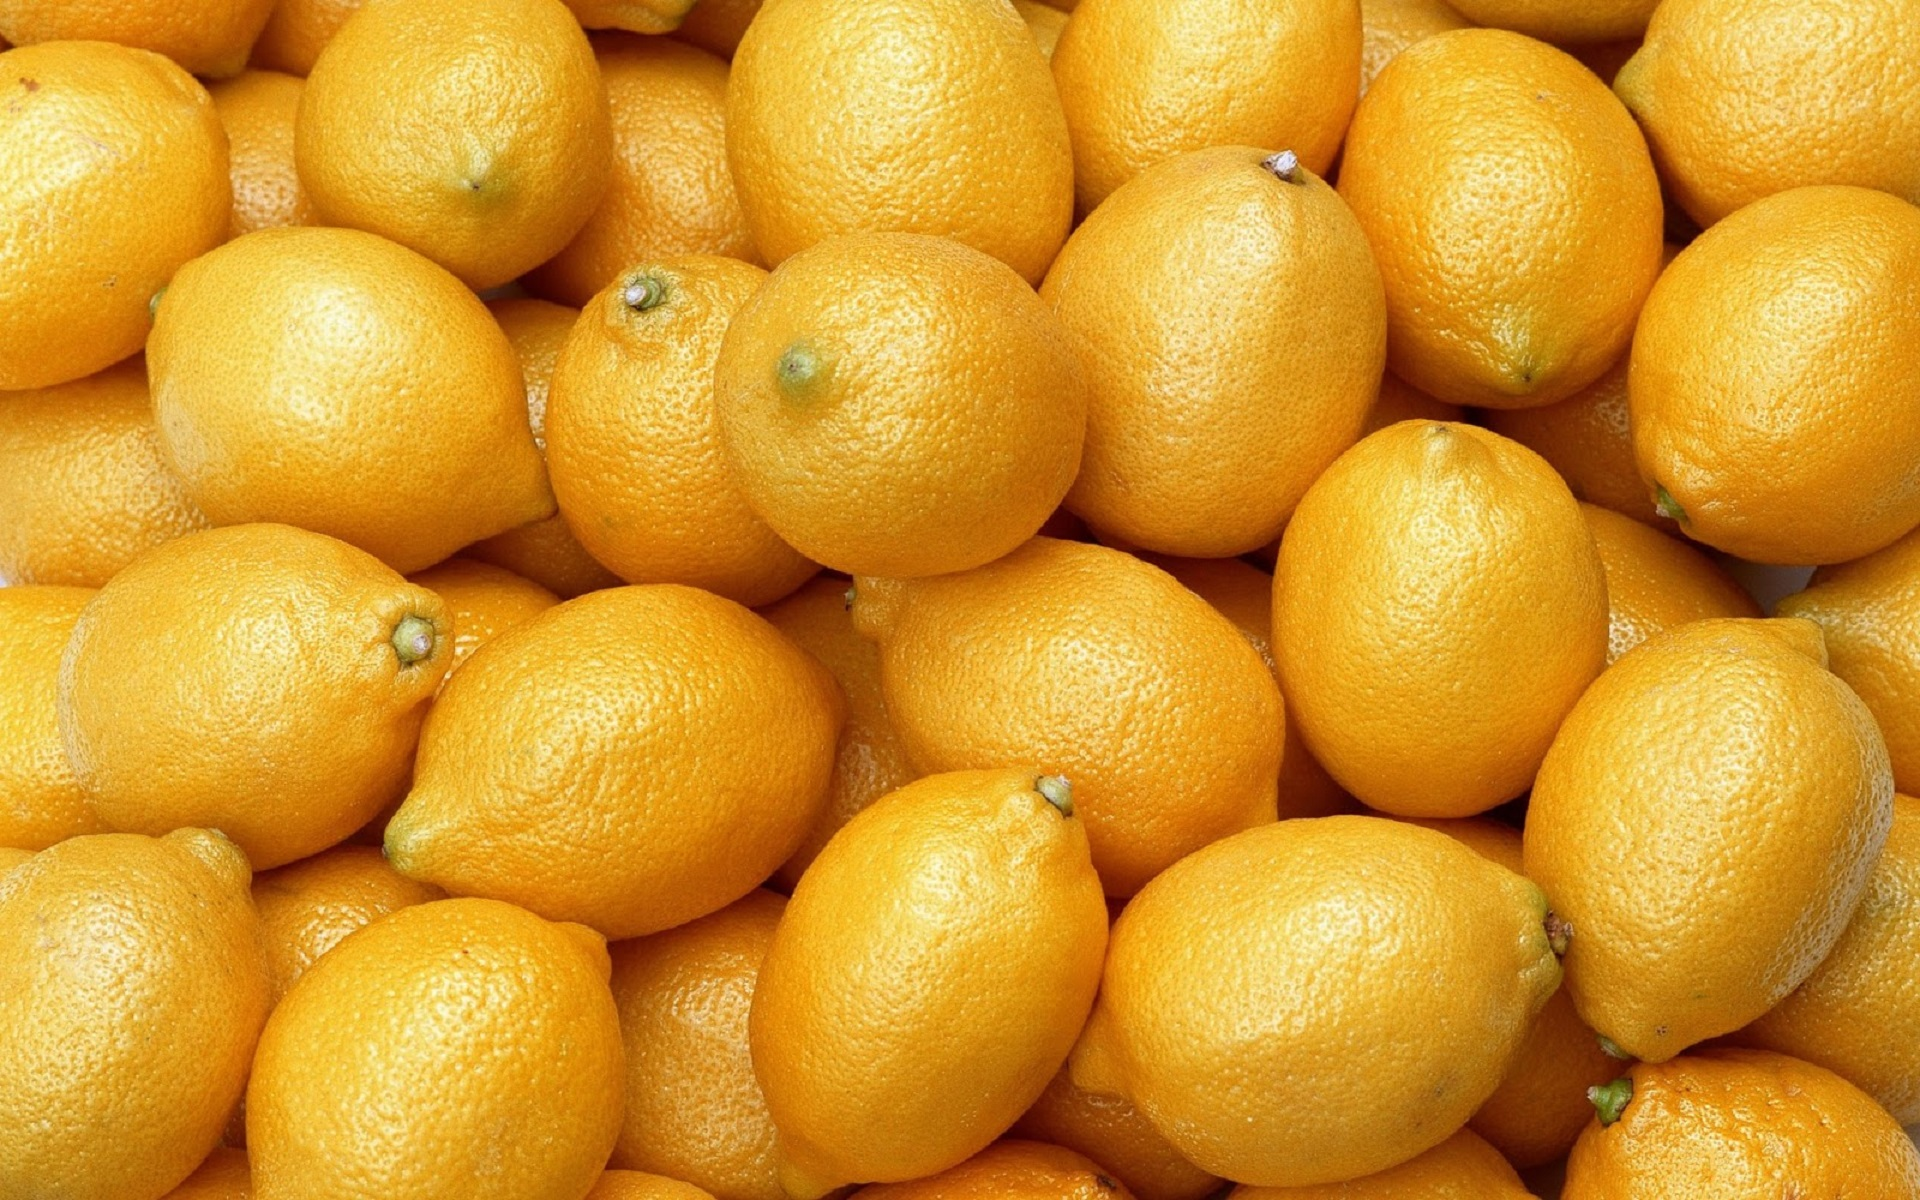 lemons wallpaper background, wallpapers